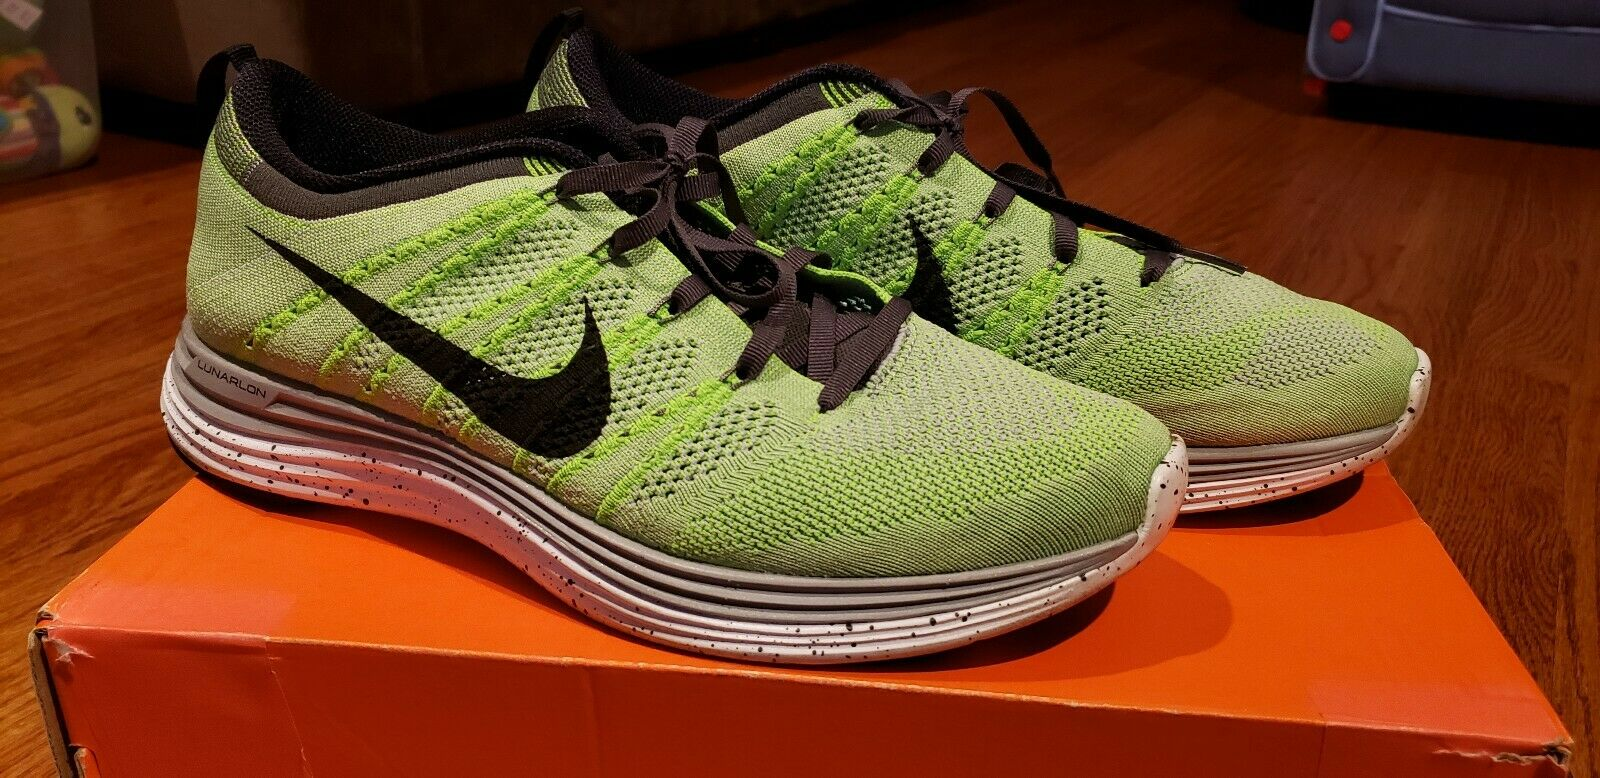 Nike Flyknit One Electric Green Size 9.5